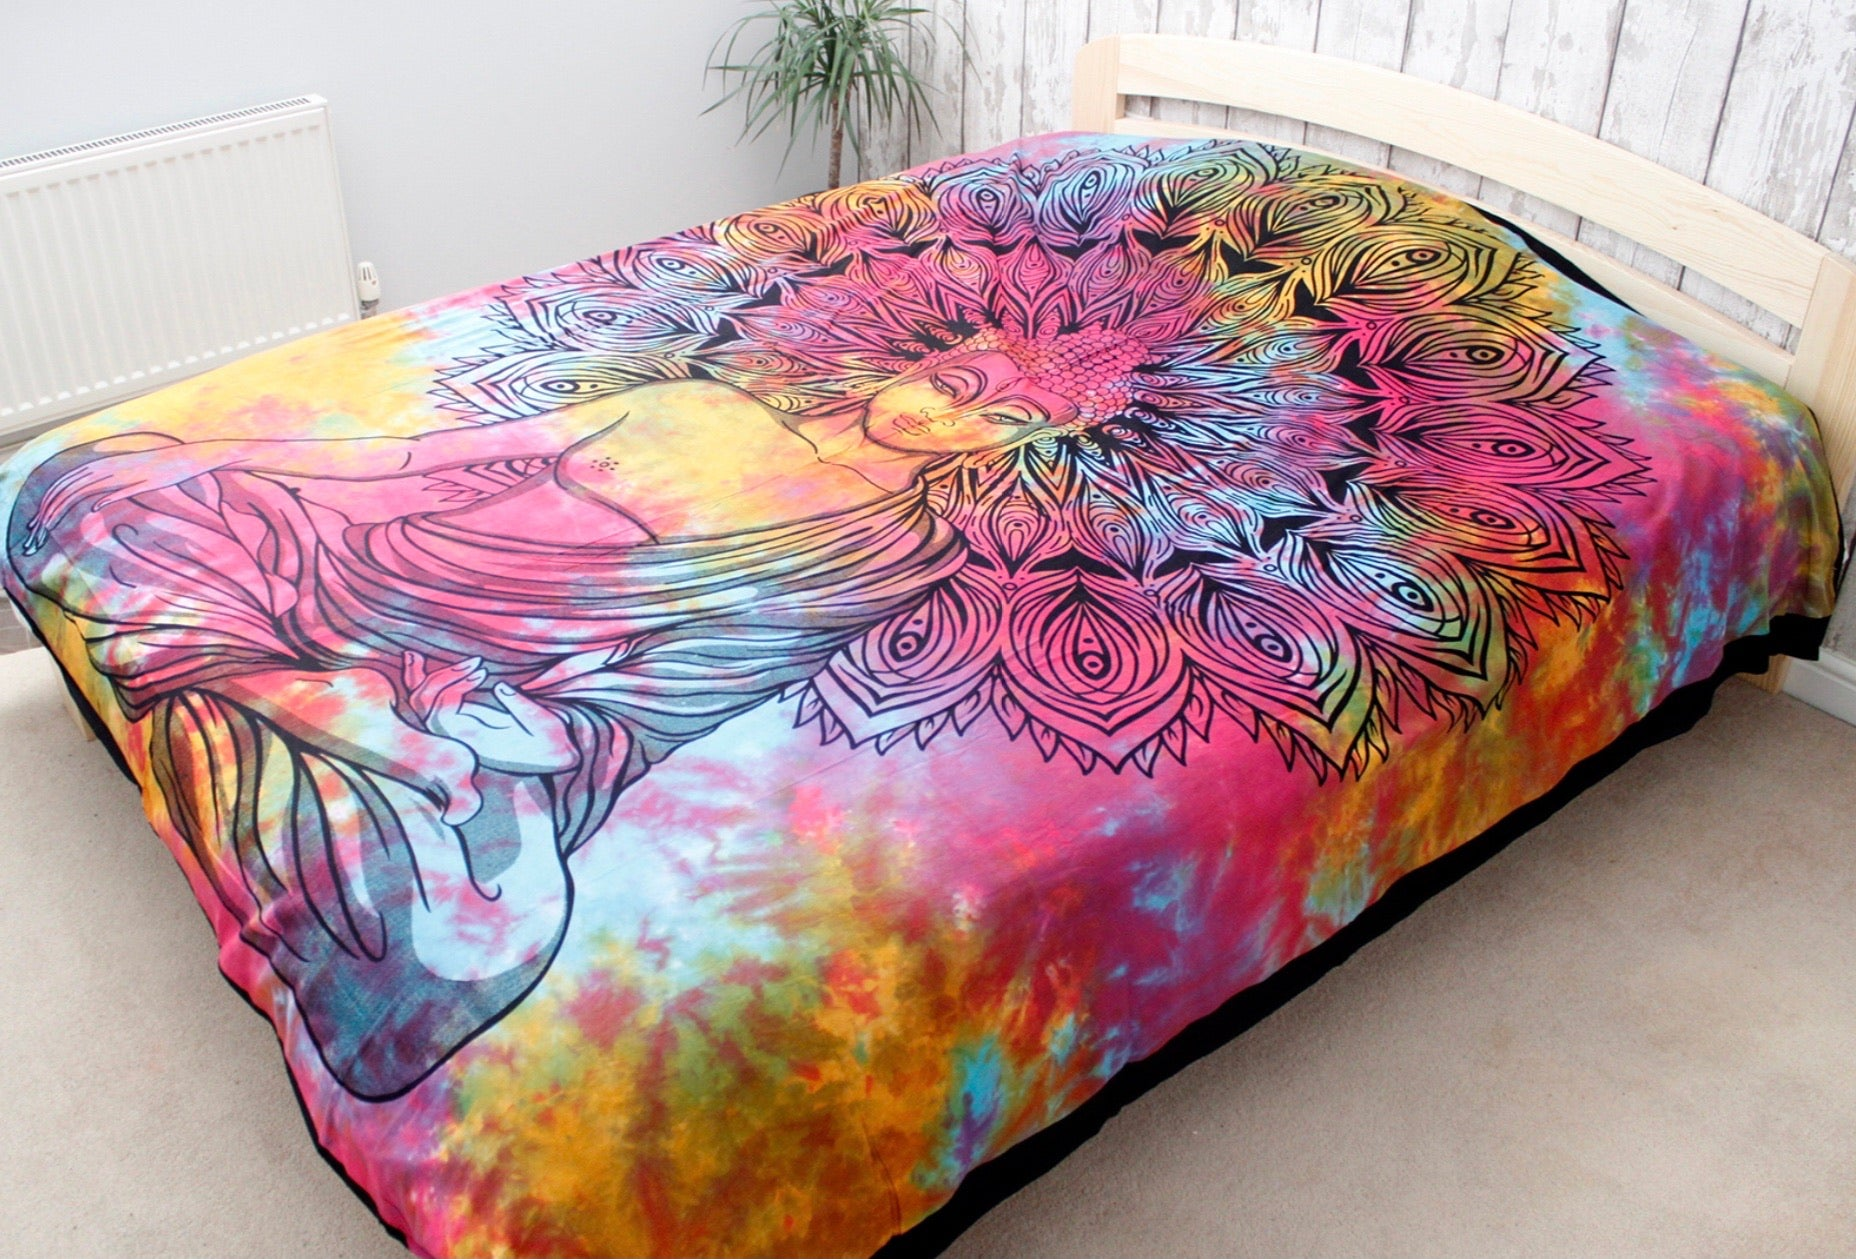 Double bed size Buddha mandala wall hanging, Indian tapestry, bedspread